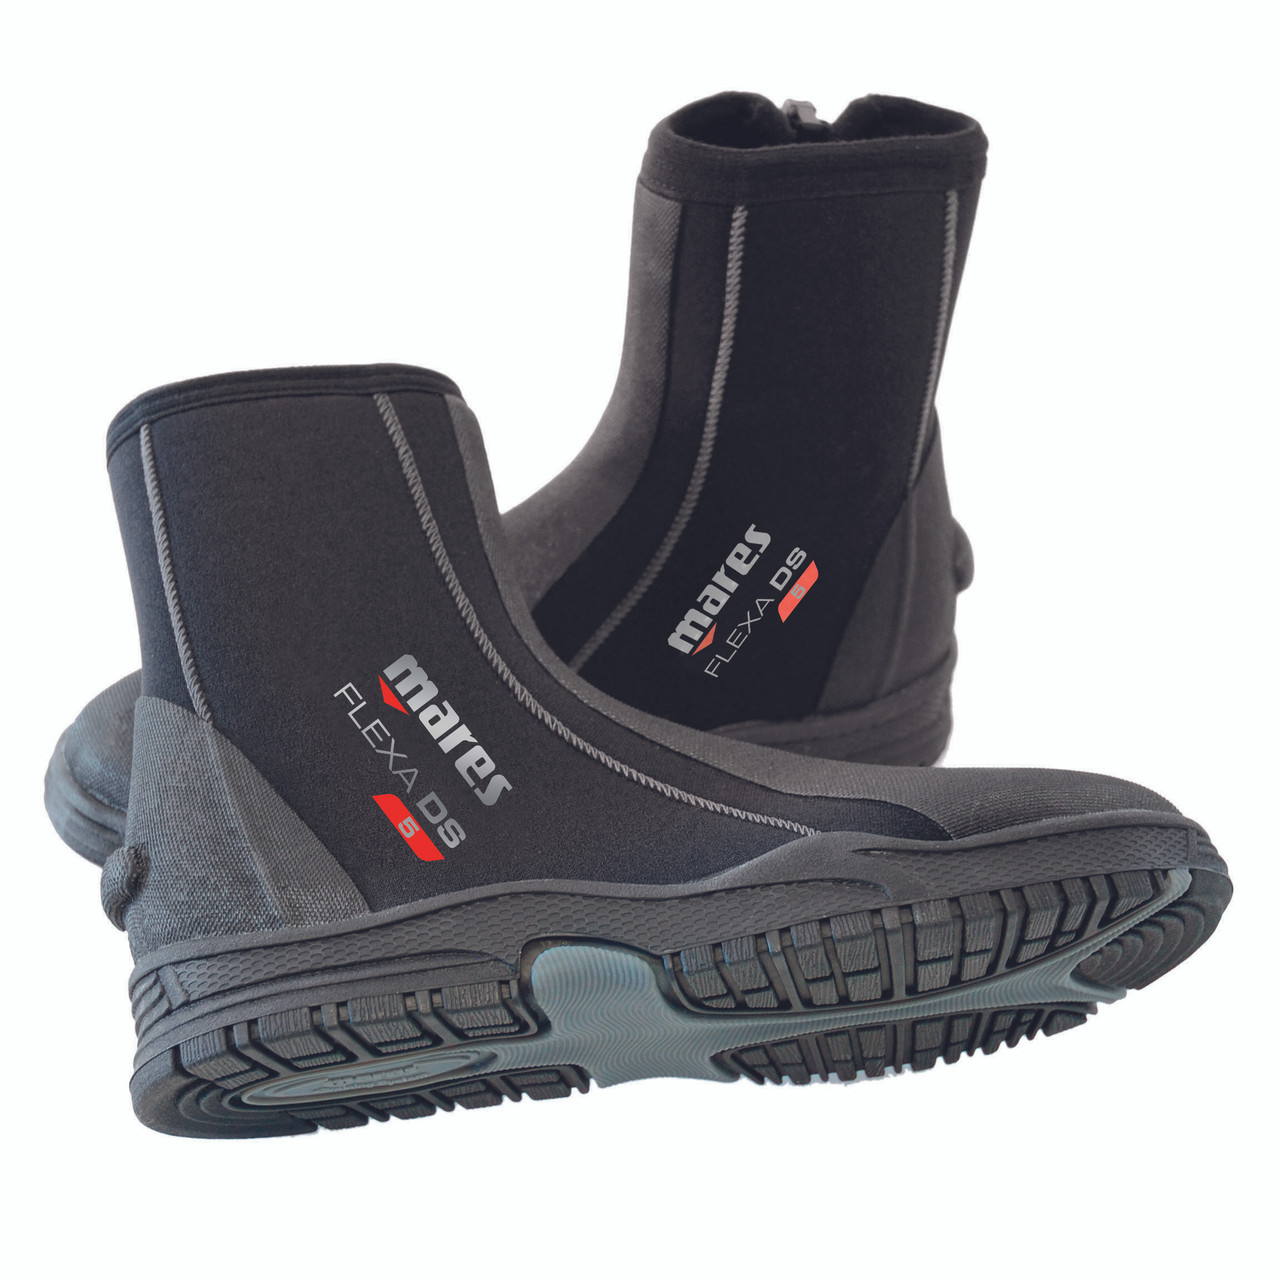 Mares Flexa 5mm Boot Scuba Diving Snorkeling Booties Wetsuit Boots